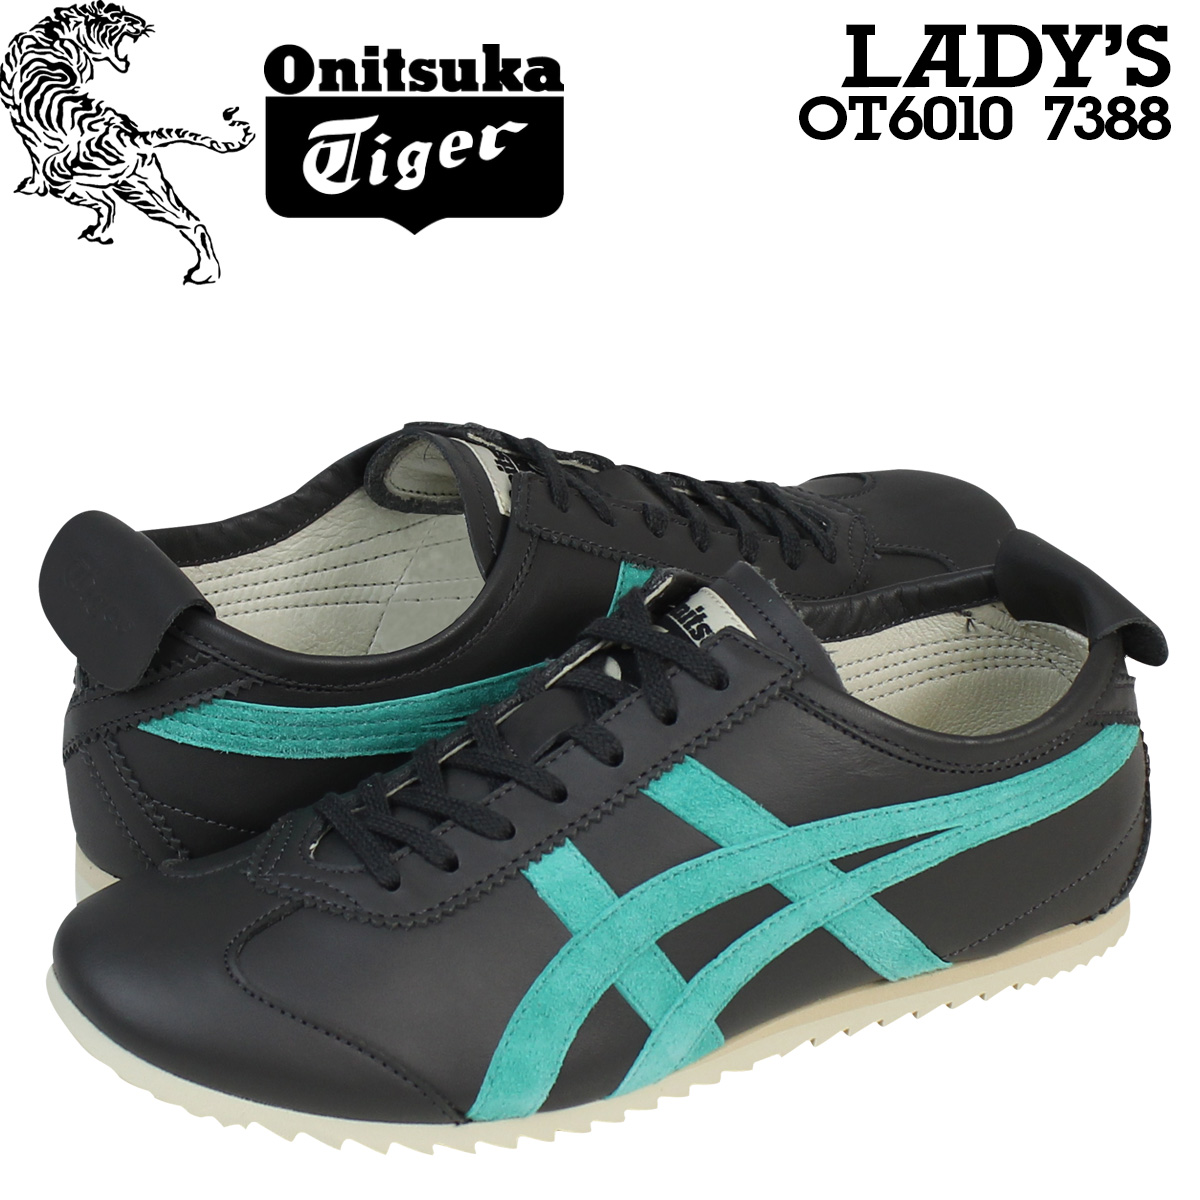 low priced 318f0 41c16 onitsuka tiger online store europe